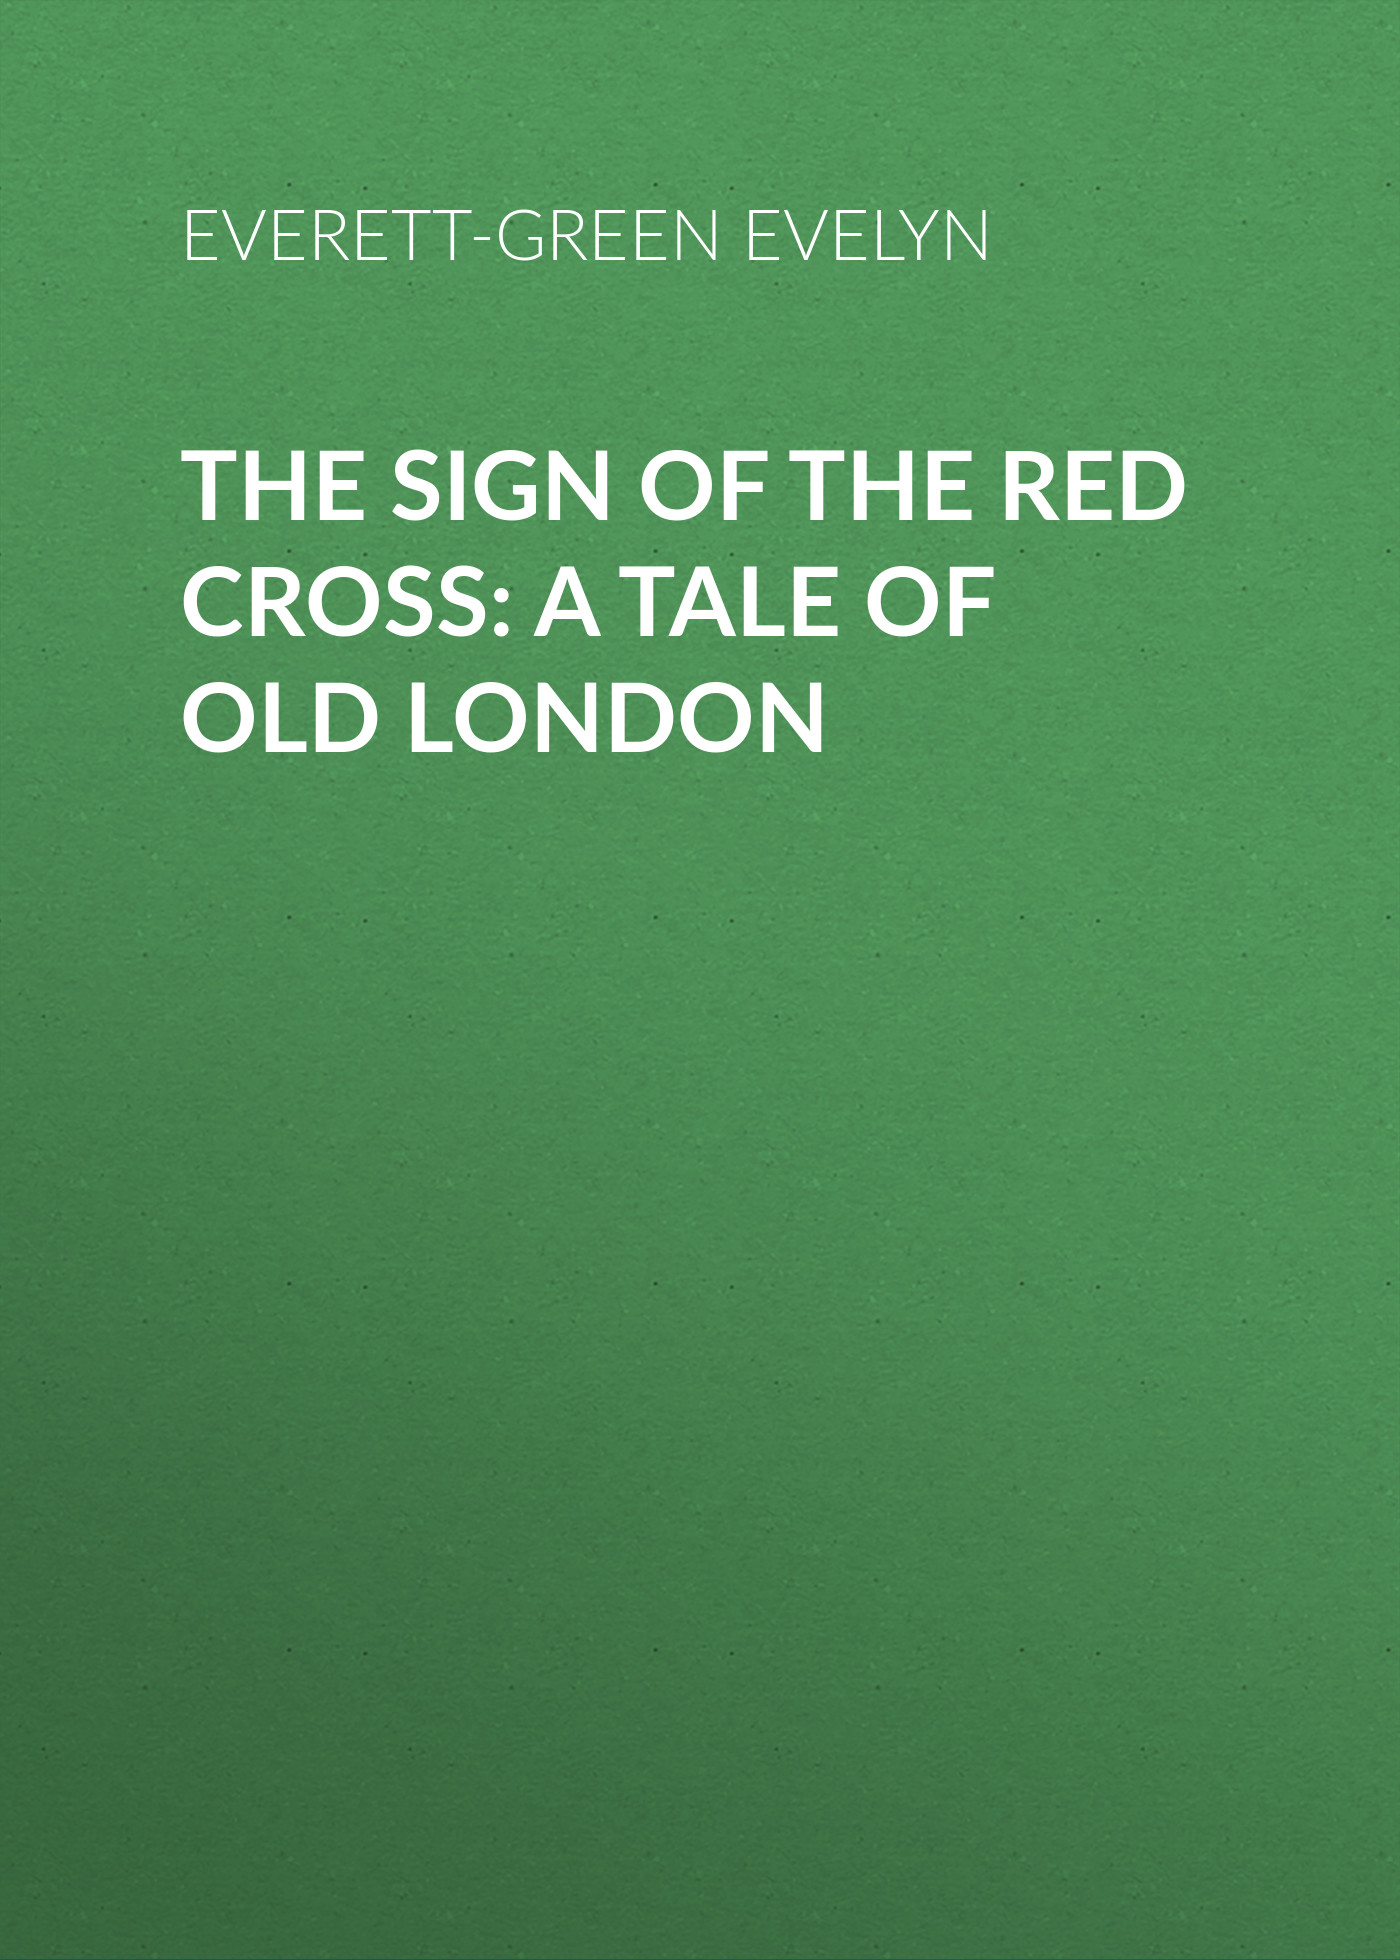 Купить Everett-Green Evelyn The Sign of the Red Cross: A Tale of Old London в интернет-магазине дешево